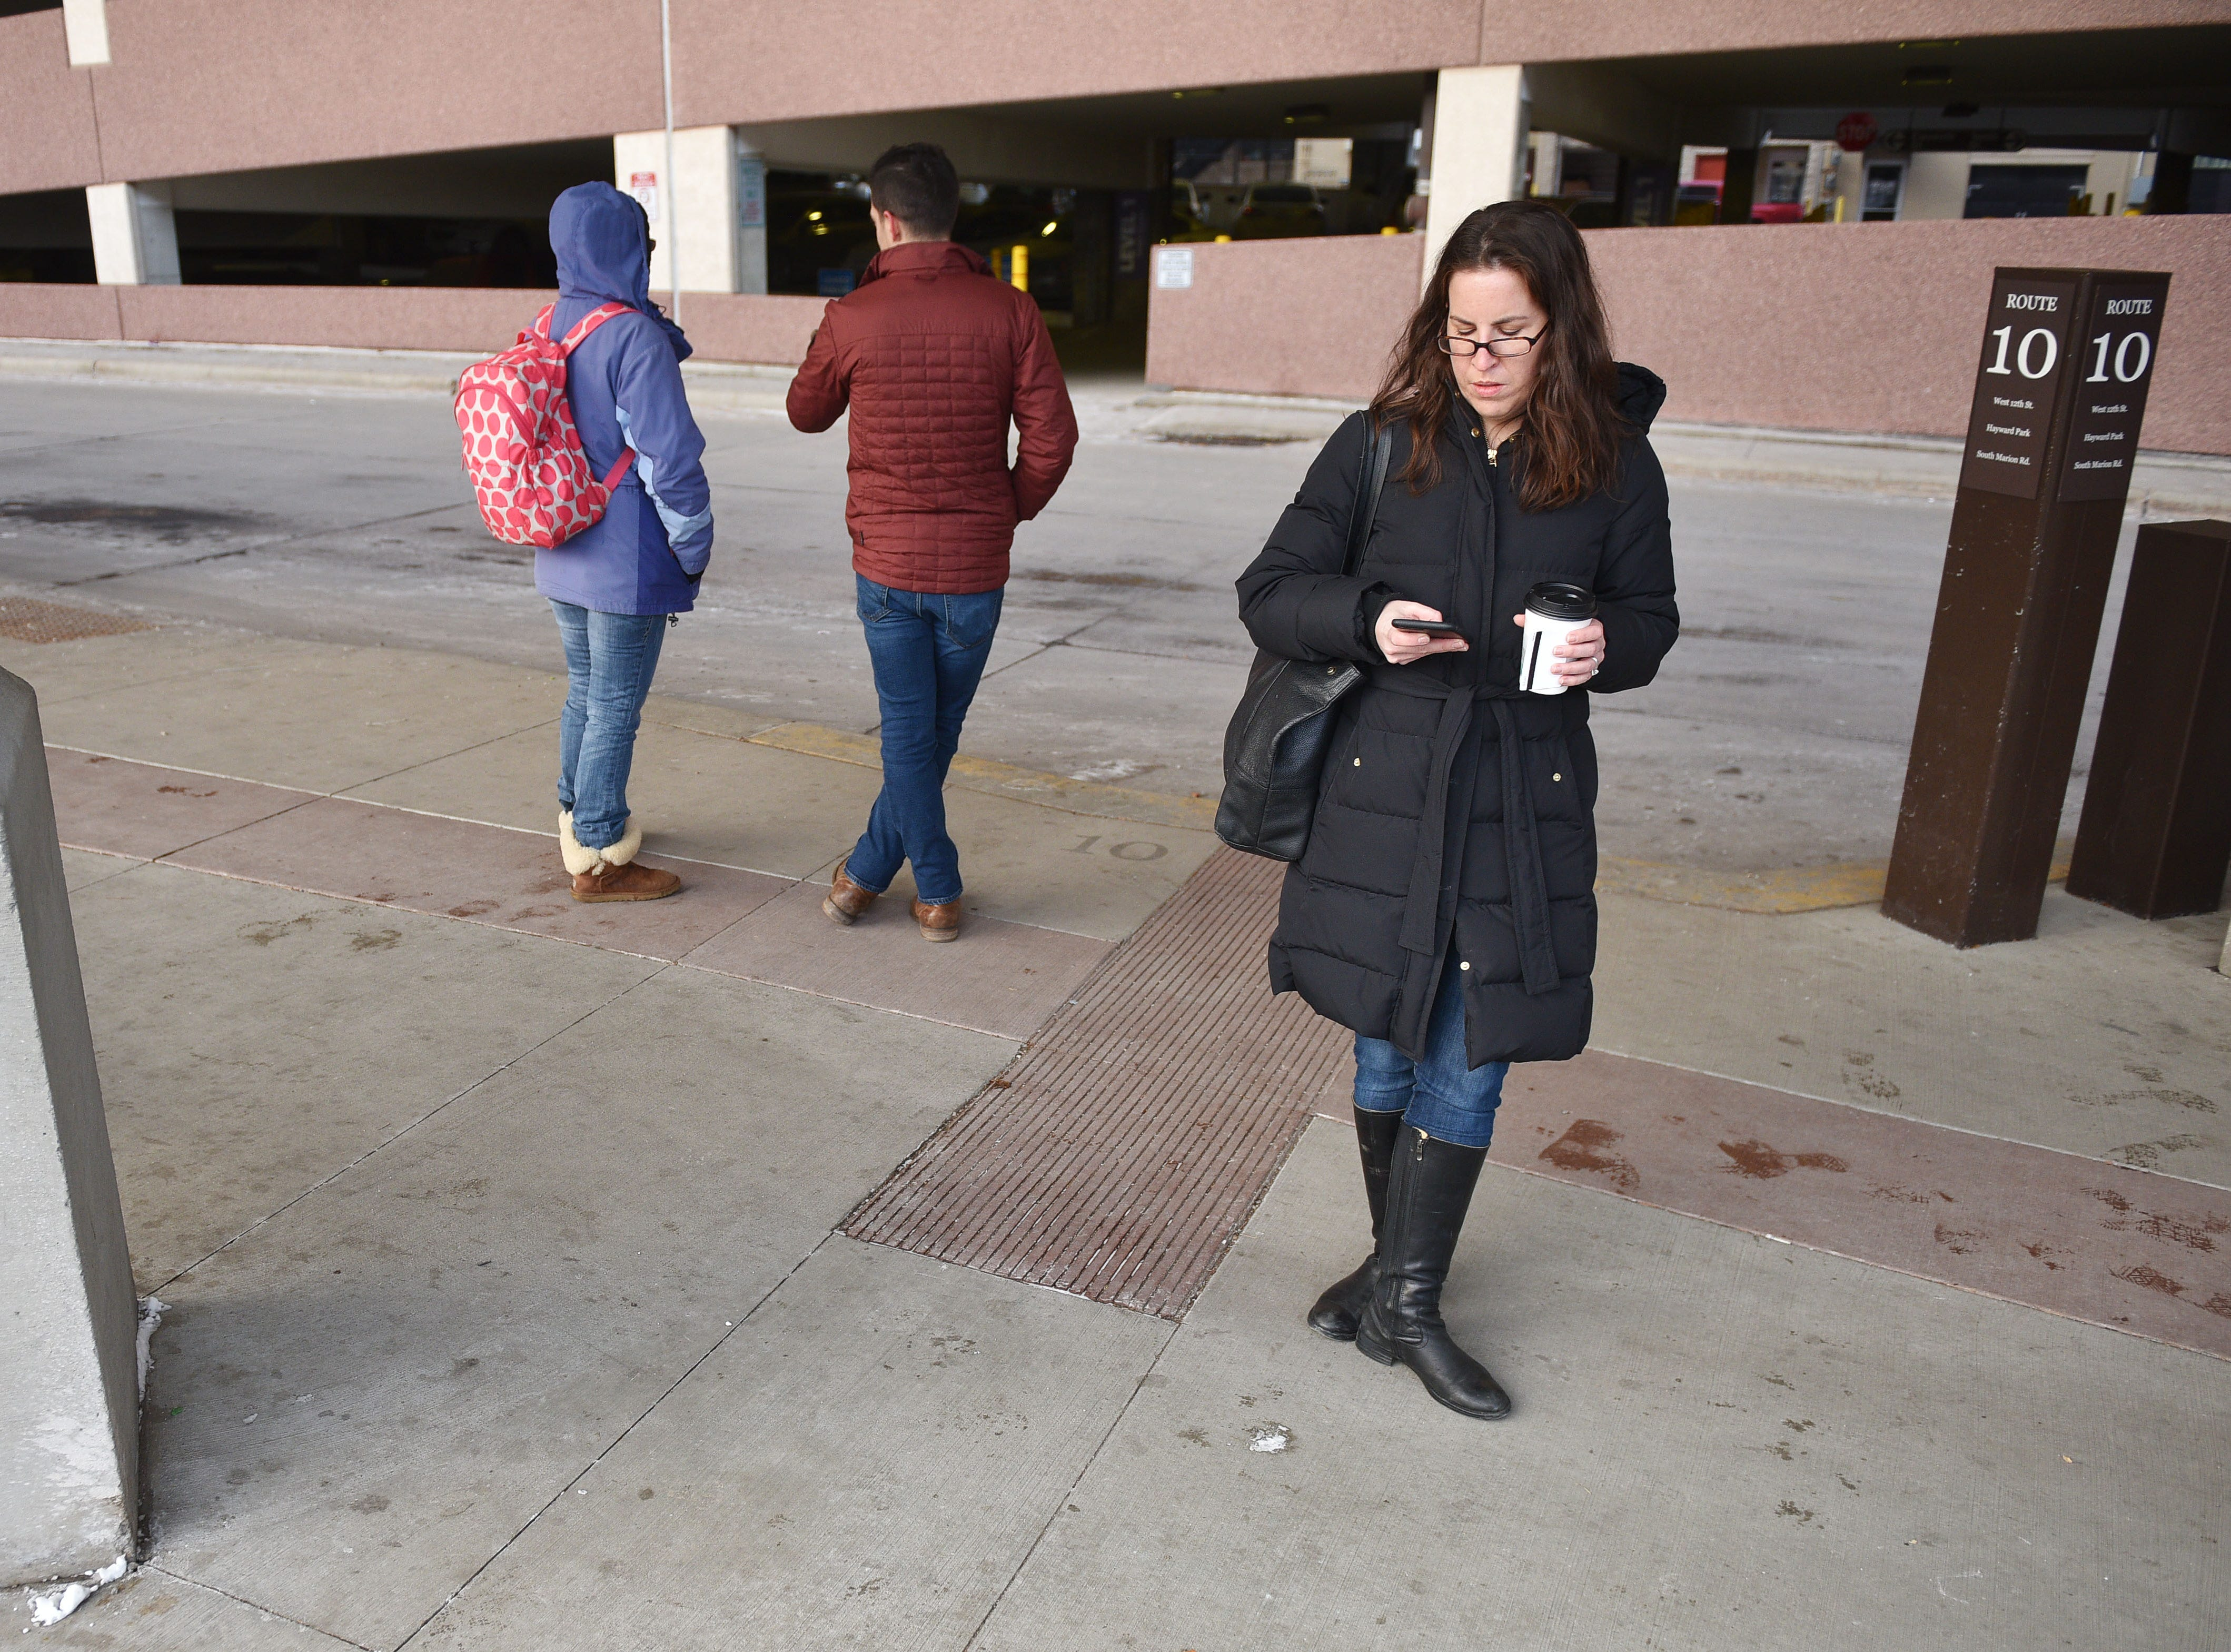 Harvard Bloomberg Institute Katie Appel Duda waits for her bus Friday, Dec. 7, in Sioux Falls. Public transit costs taxpayers millions each year. That's why a task force has been set up to study the issue with assistance from staff at the Harvard Bloomberg Institute. A part of the task force's work is engaging bus riders and the general public, so members were at the bus depot at 9 a.m. Friday to talk to riders and ride the buses.